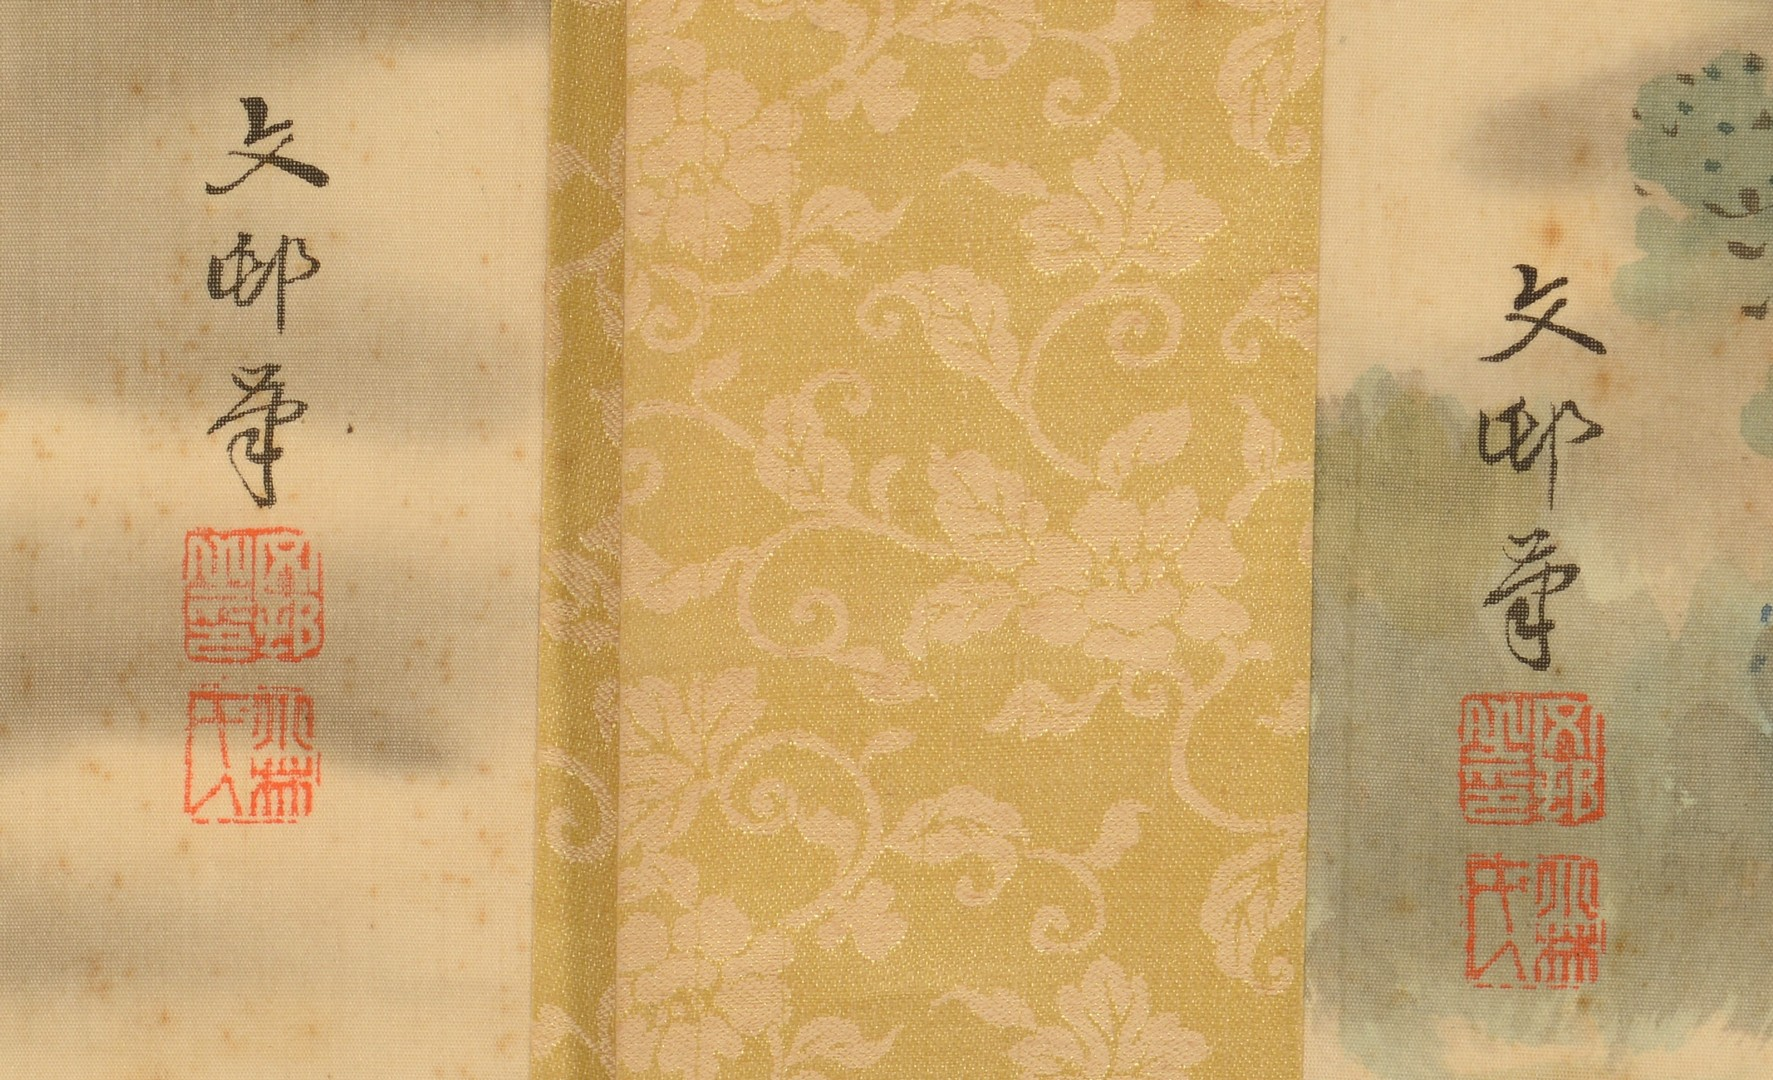 Lot 3832408: 3 Japanese Scroll Paintings, Landscapes